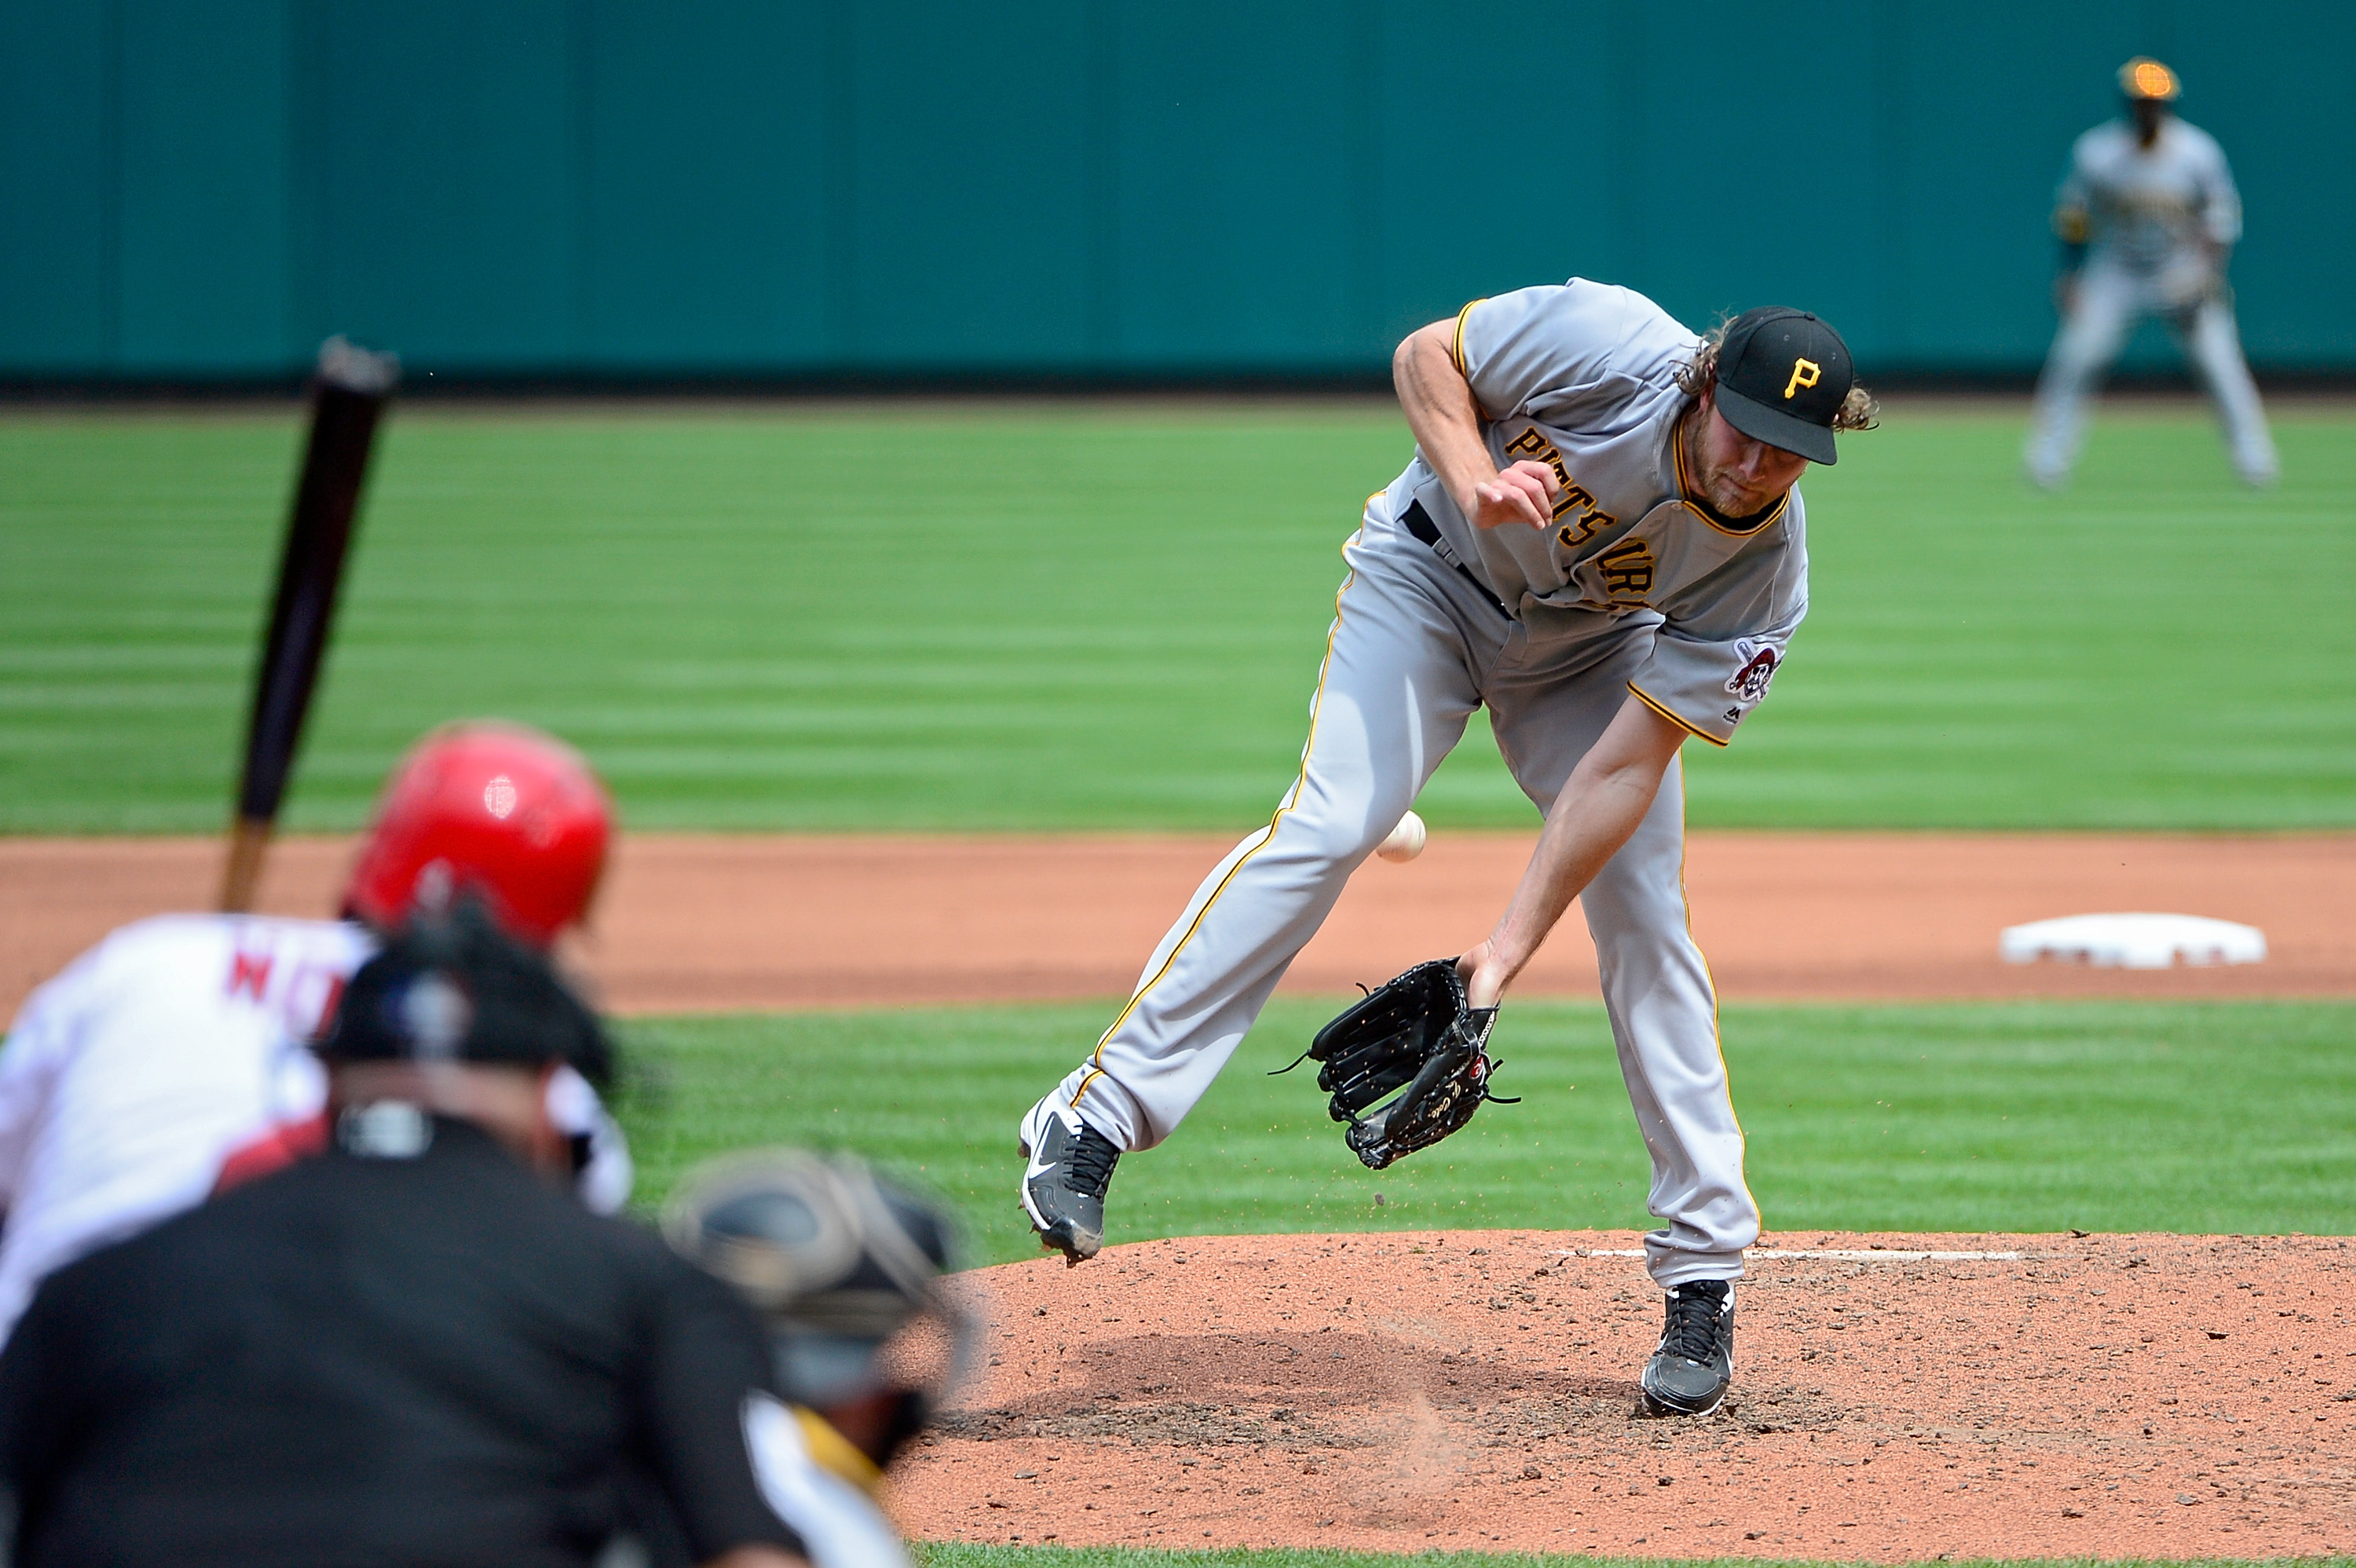 Harrison's single gives Pirates 2-1 win over Brewers in 10